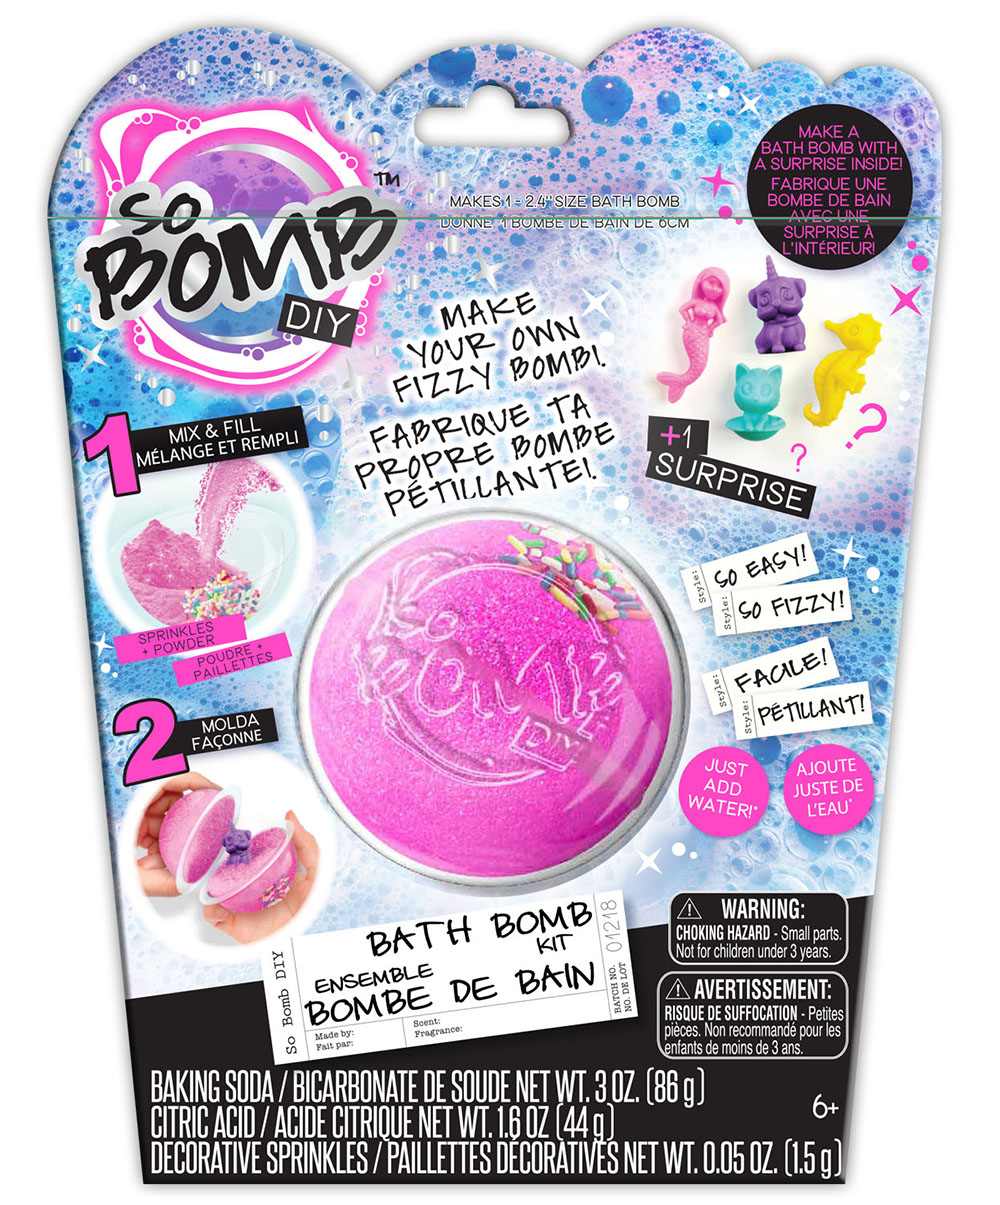 So Bomb DIY Ensemble bombe de bain